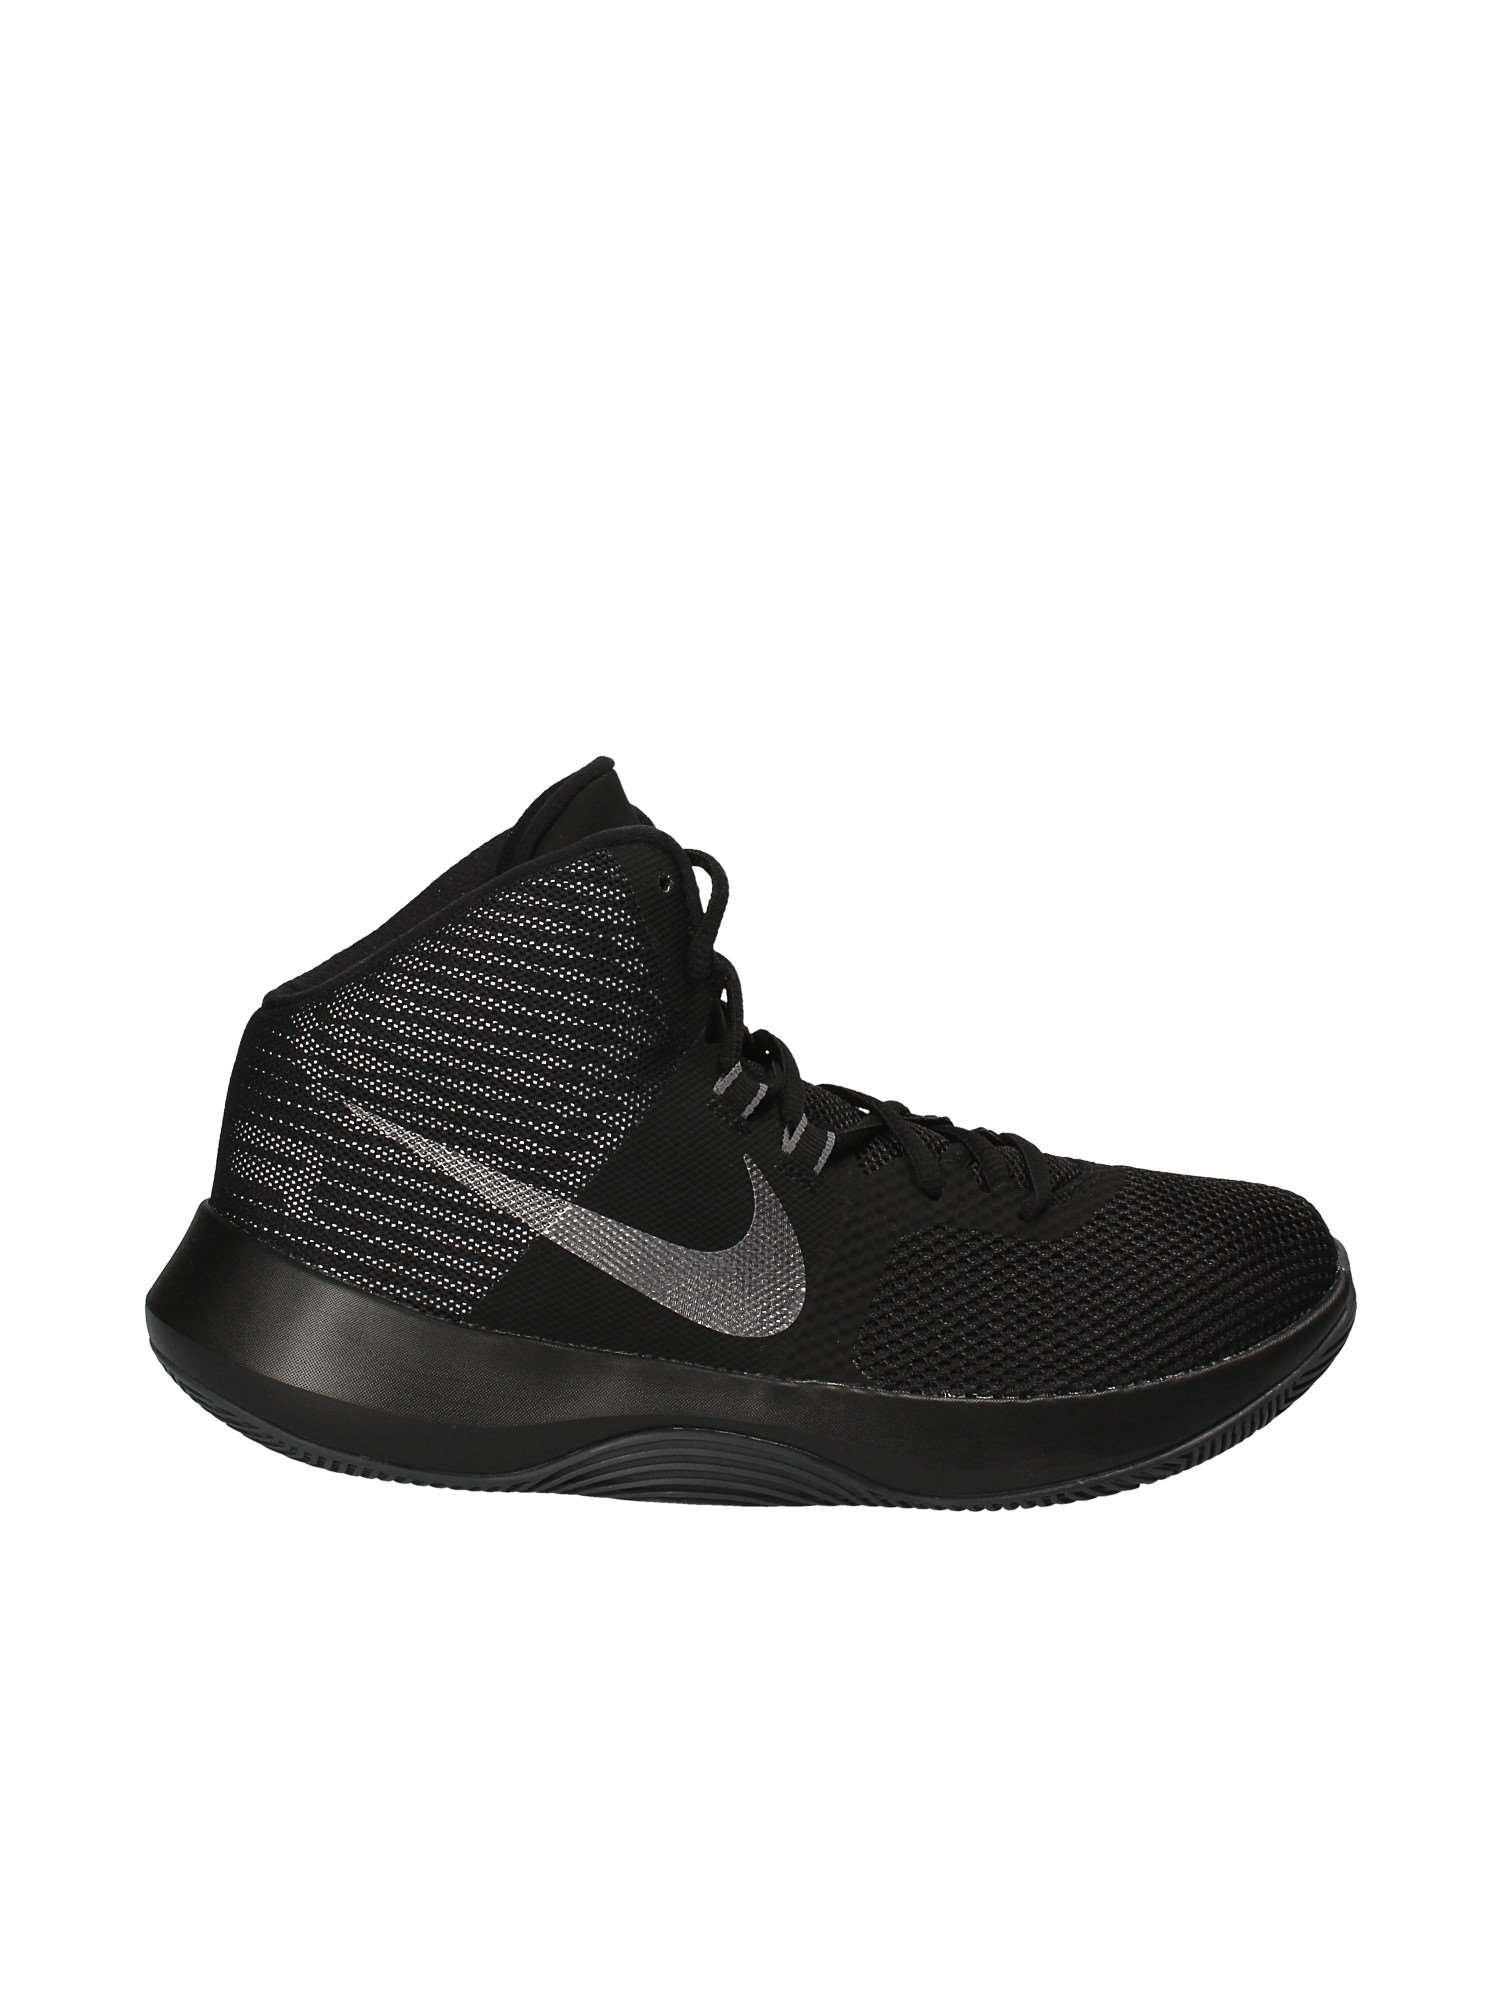 Nike Mens AIR Precision NBK Black MTLC Dark Grey White Size 8